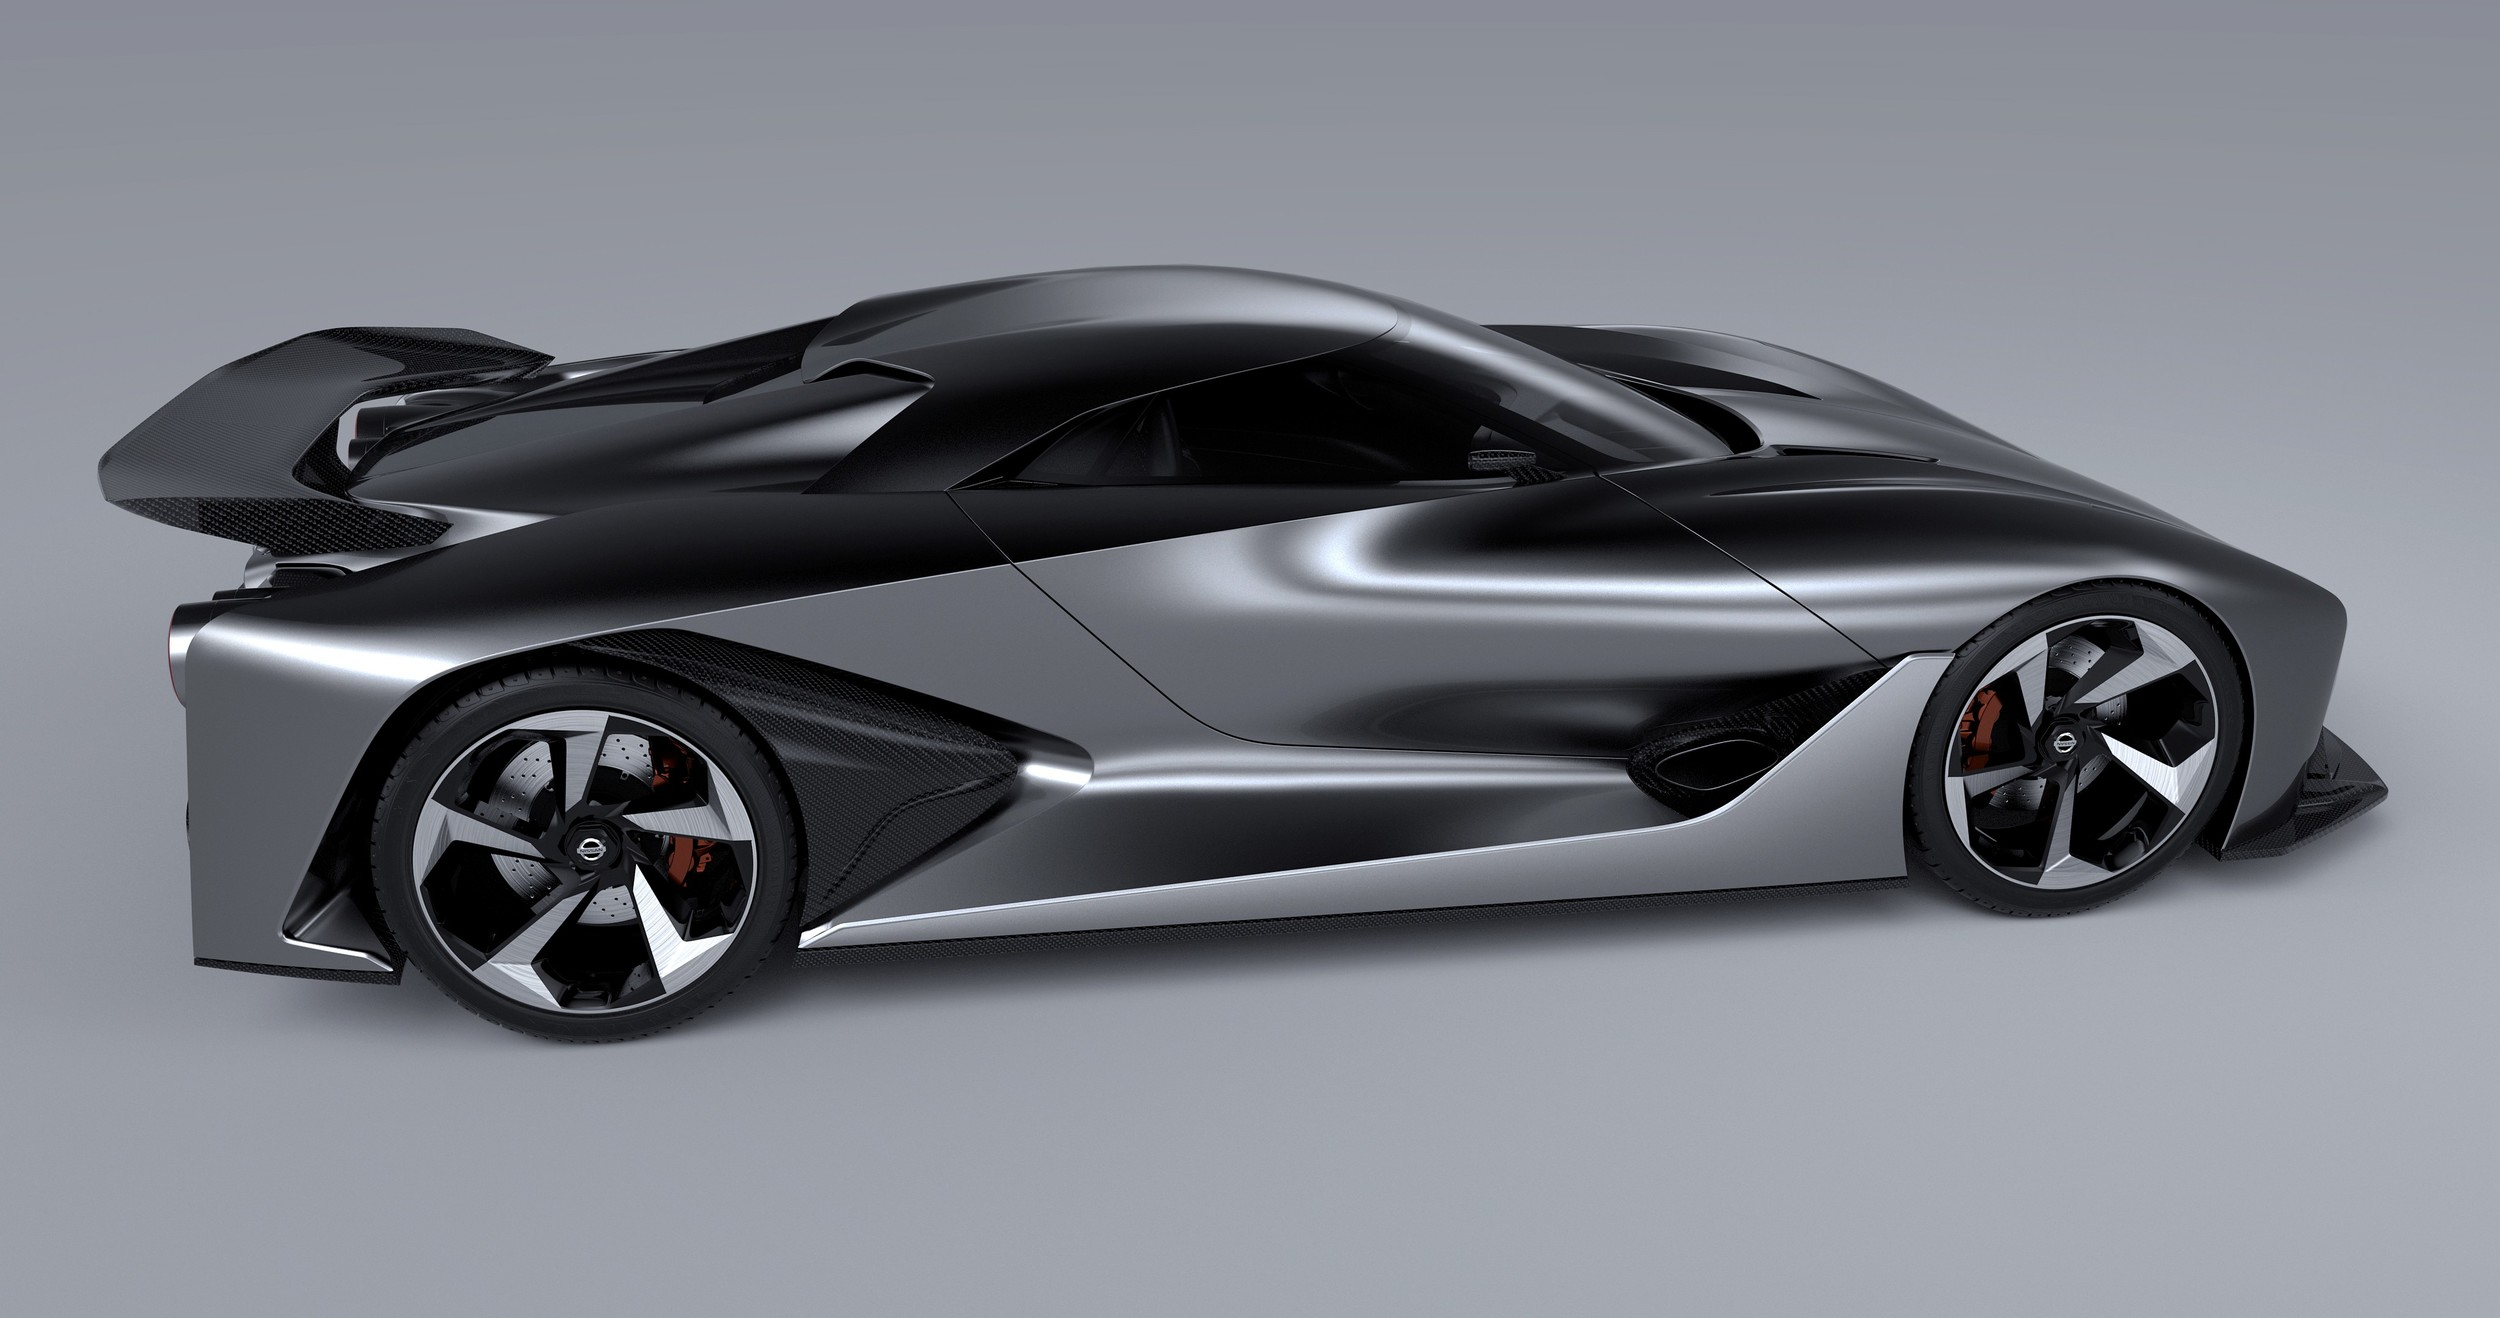 2014_Nissan_Concept_2020_Vision_Gran_Turismo_026_9986.jpg